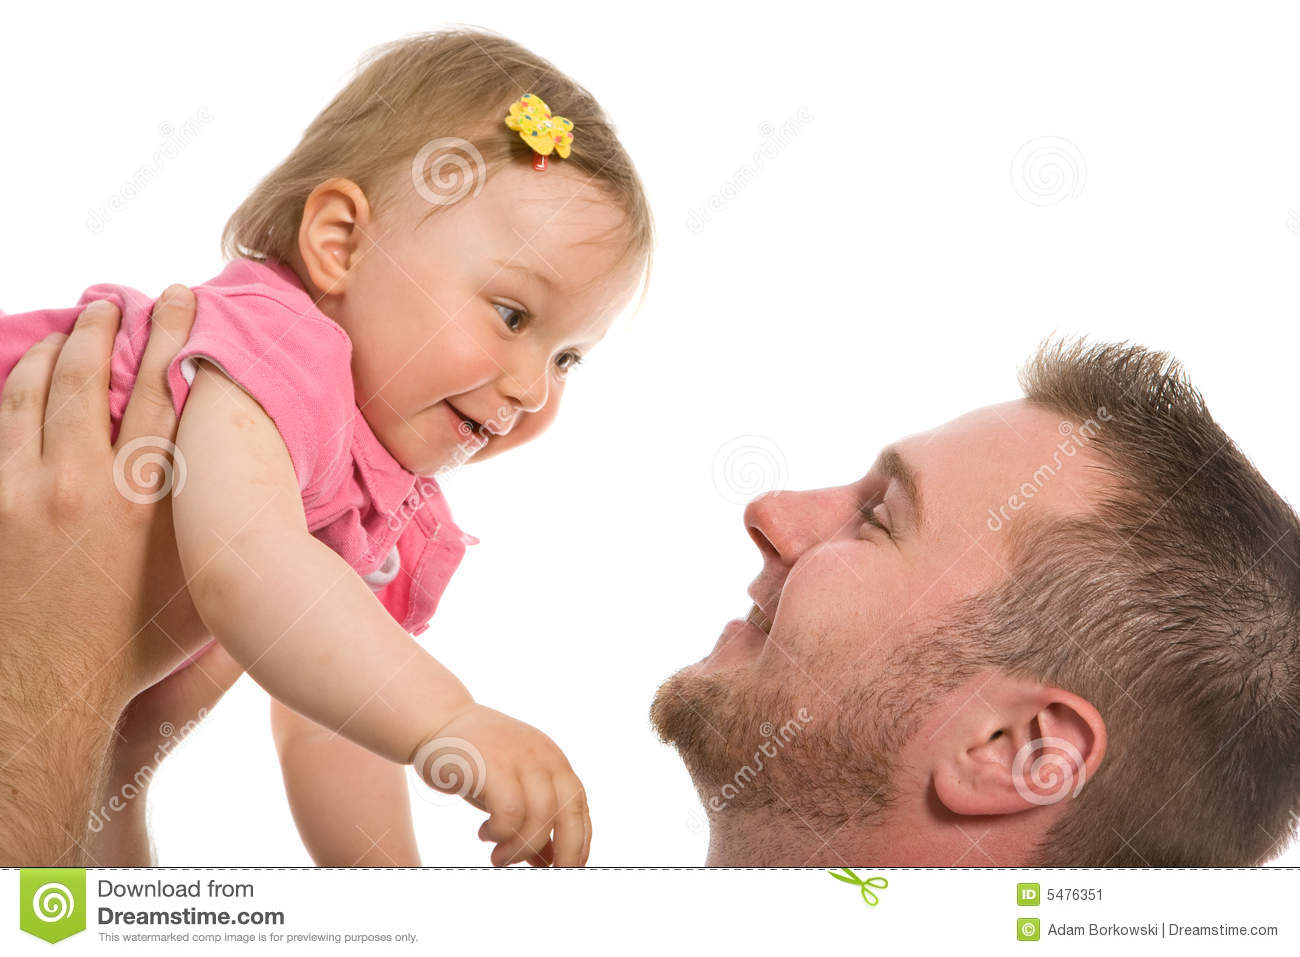 daddy baby girl dating The 10 golden rules of sugar dating sugar-baby-definition/ what is a sugar baby & rules of being a sugar baby - sugar daddy sites from thought catalog.